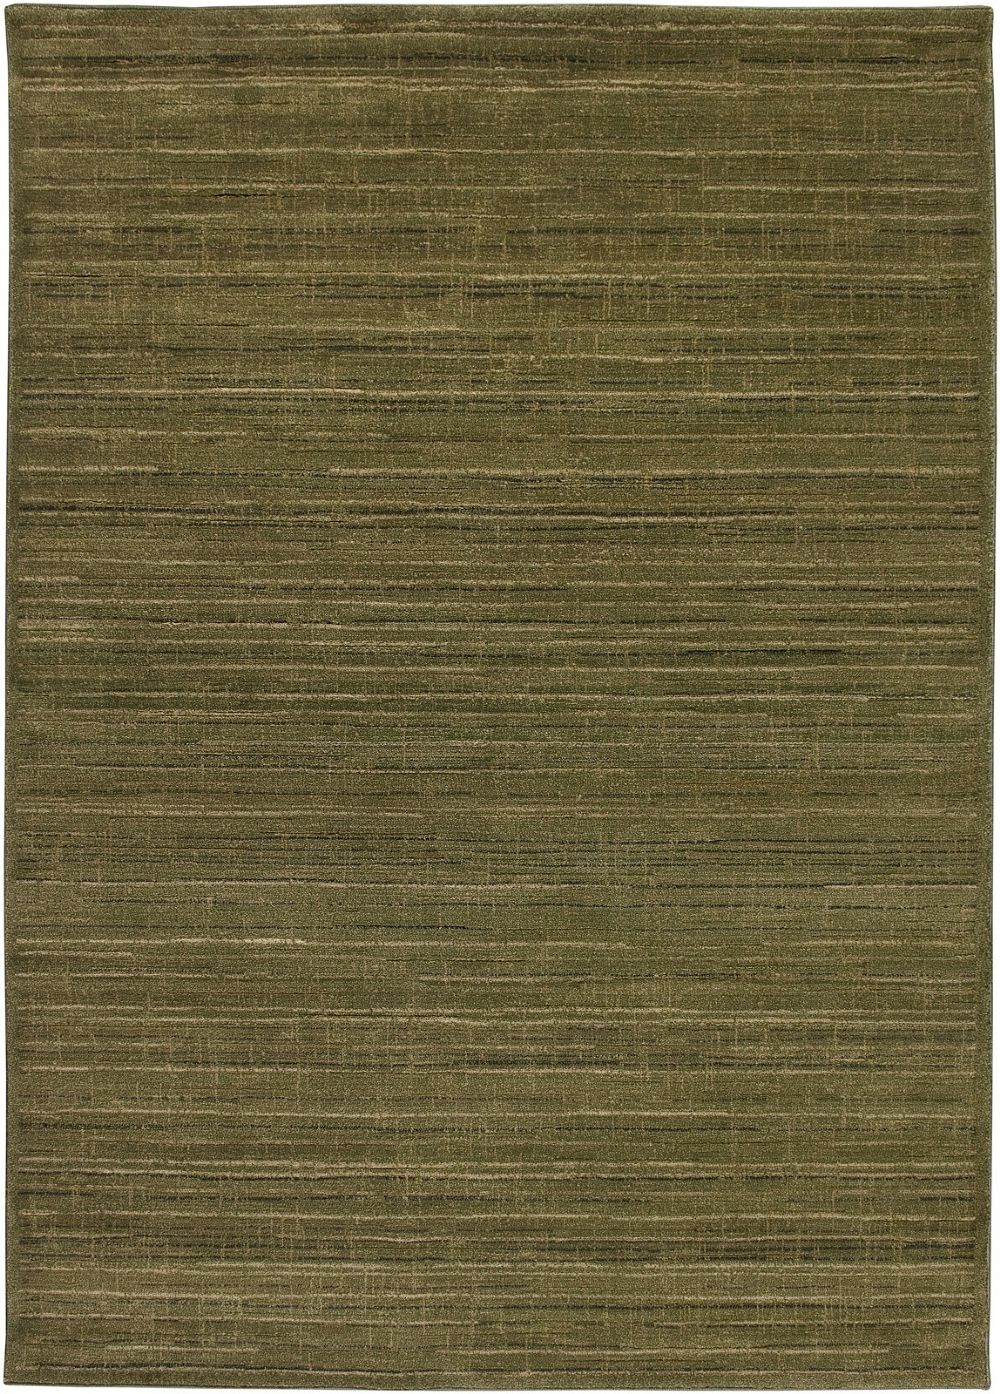 rizzy rugs galleria contemporary area rug collection